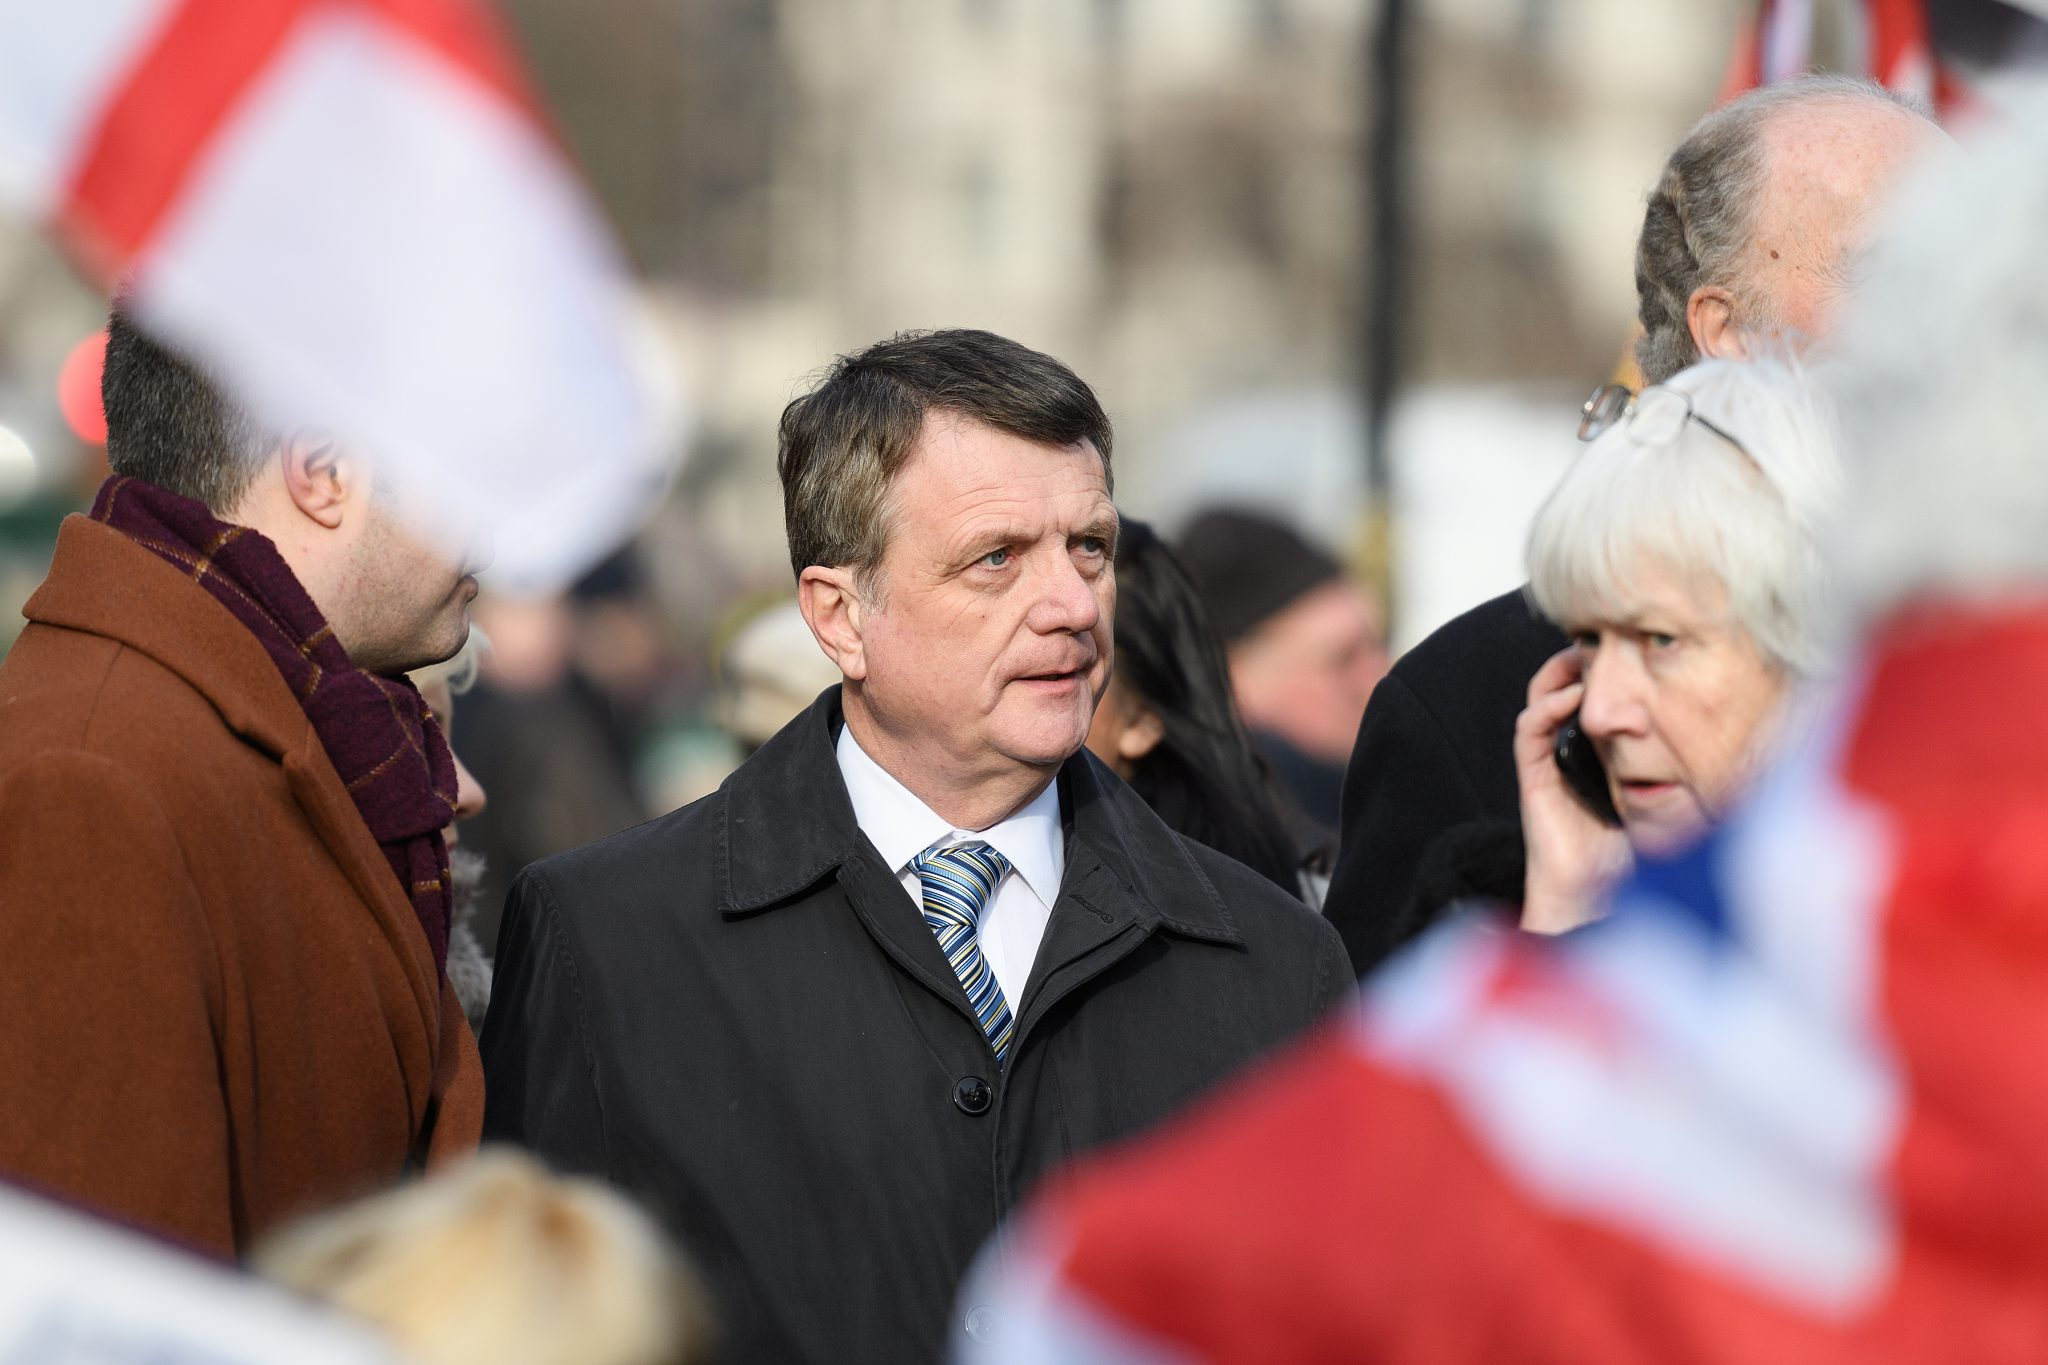 Gerard Batten has accused prime minister Theresa May of betraying the Brexit vote (Credit: Leon Neal)